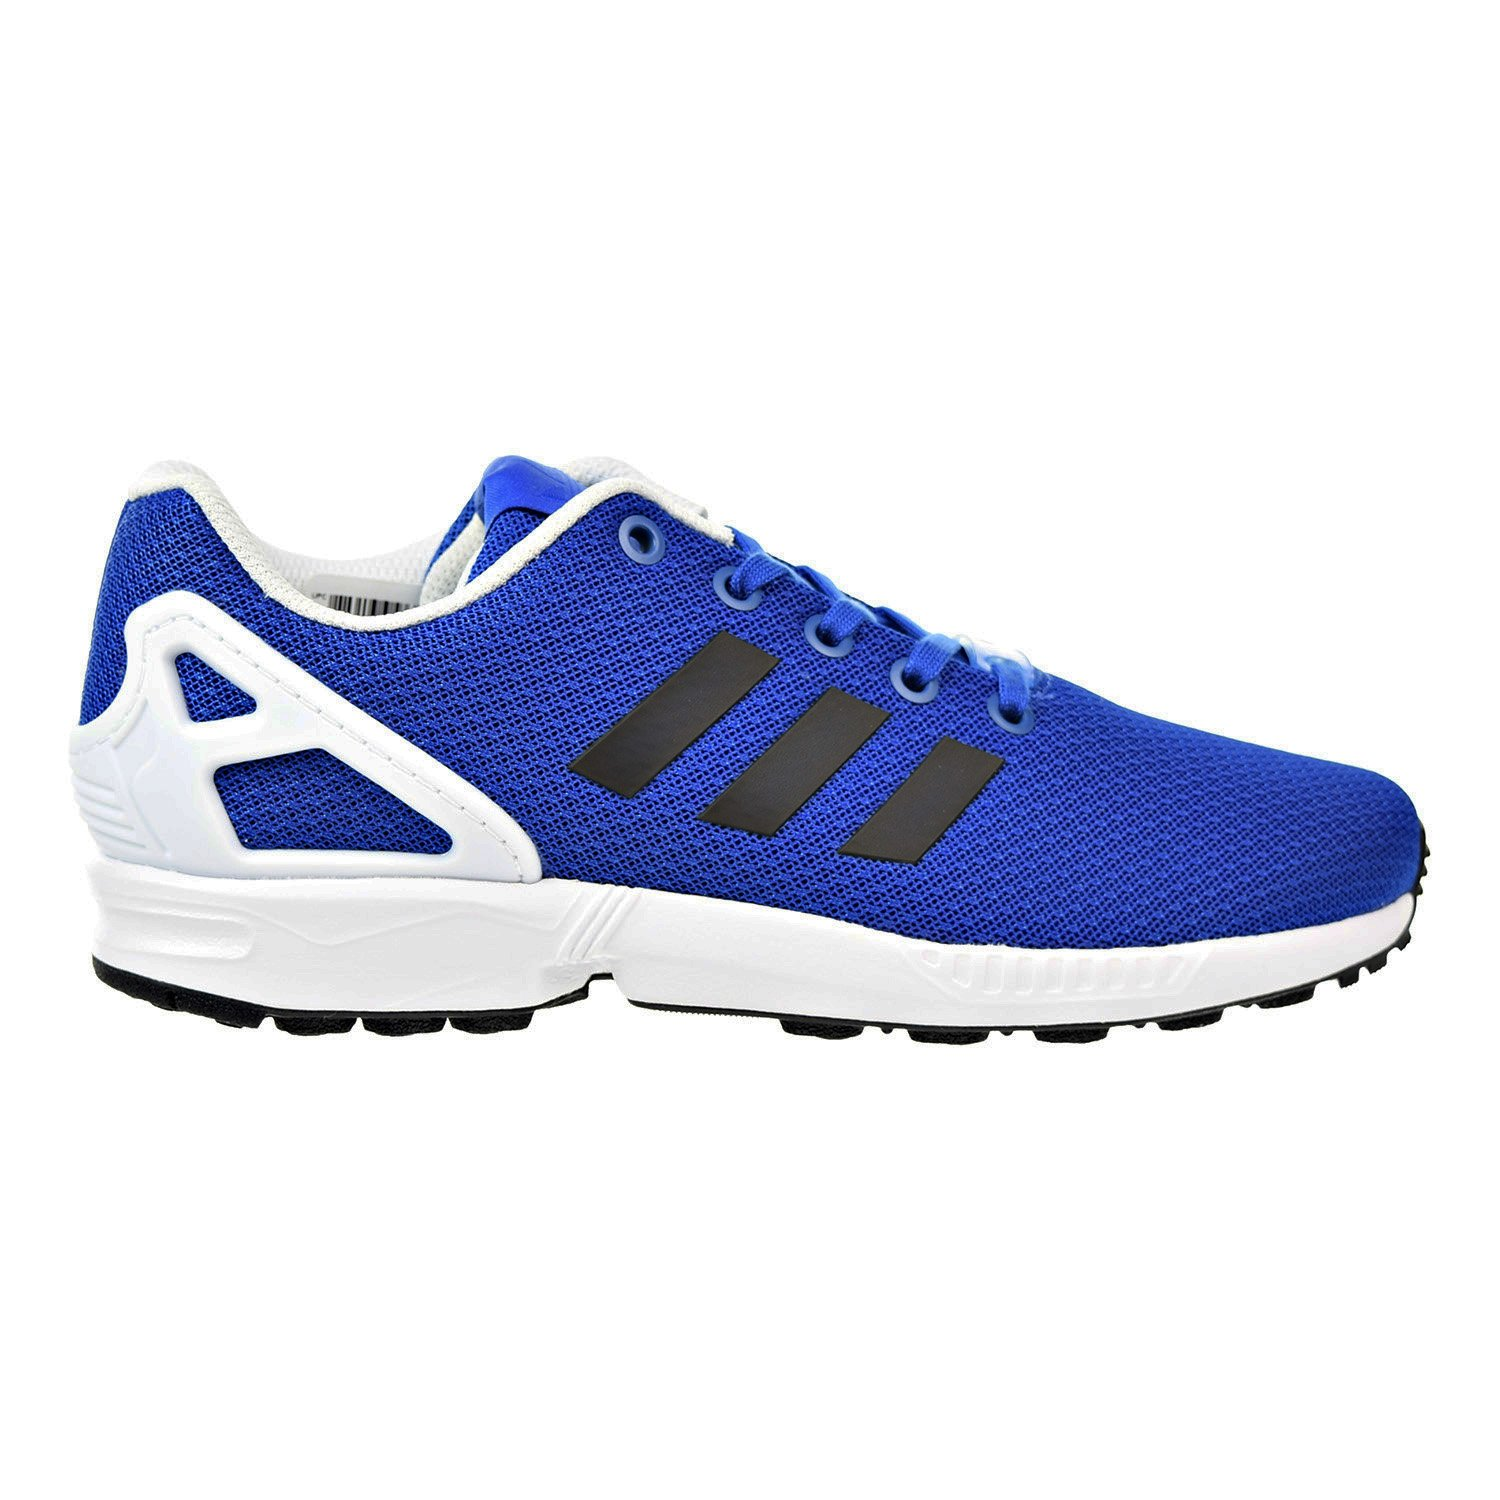 new styles 66be5 831ea adidas Originals Boys' ZX Flux J Running Shoe, Blue/Black/White, 6 M US Big  Kid